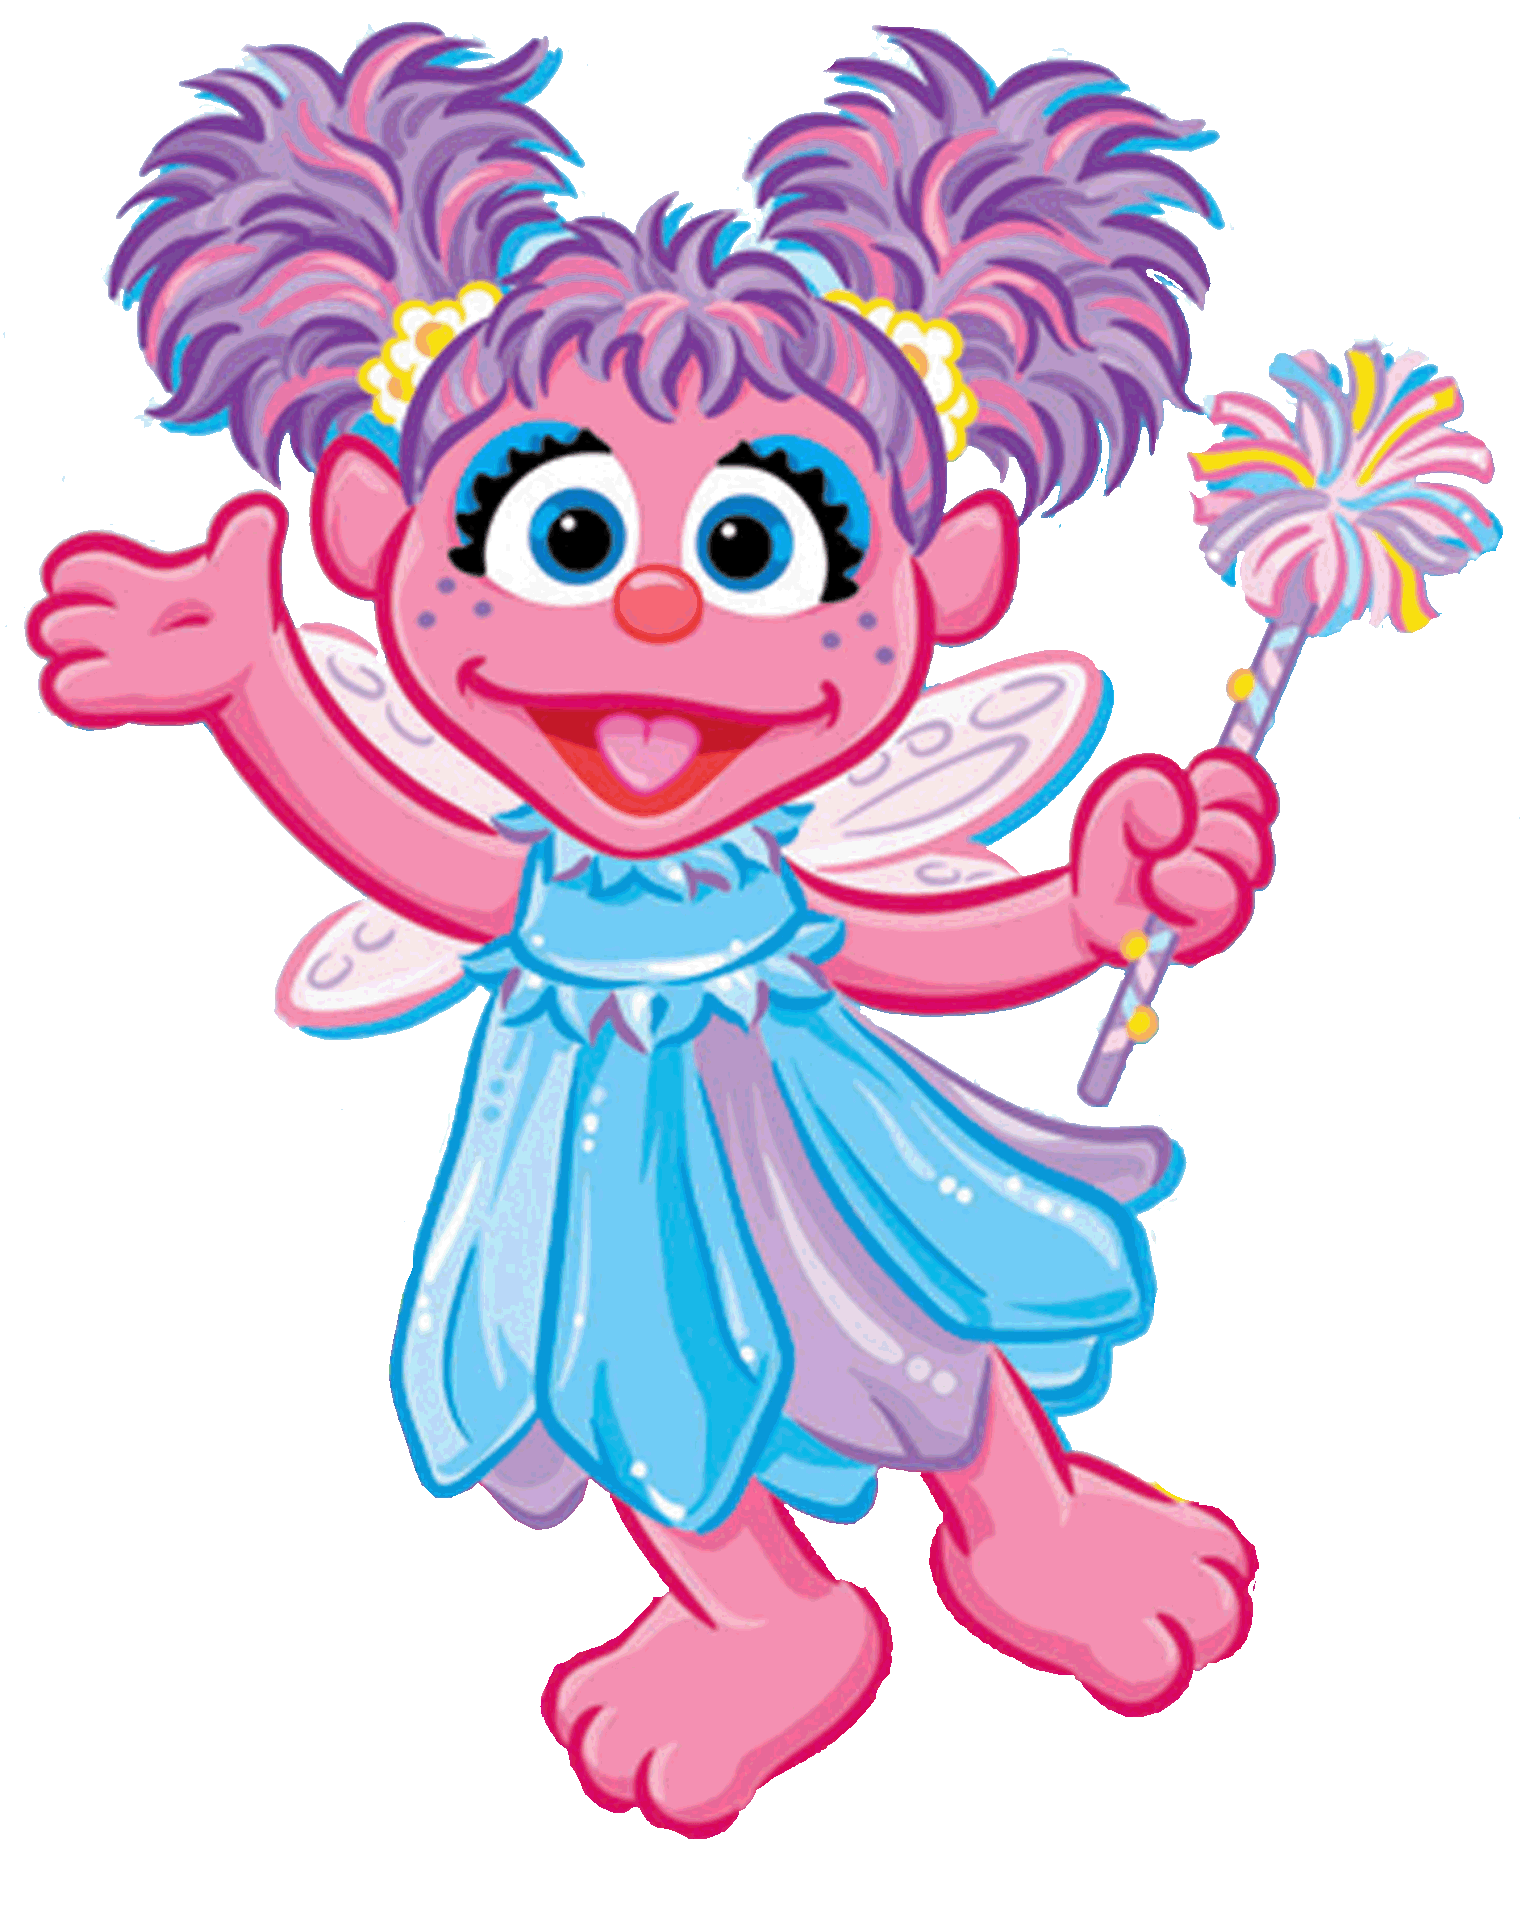 Number 2 clipart elmo. Pin by crafty annabelle